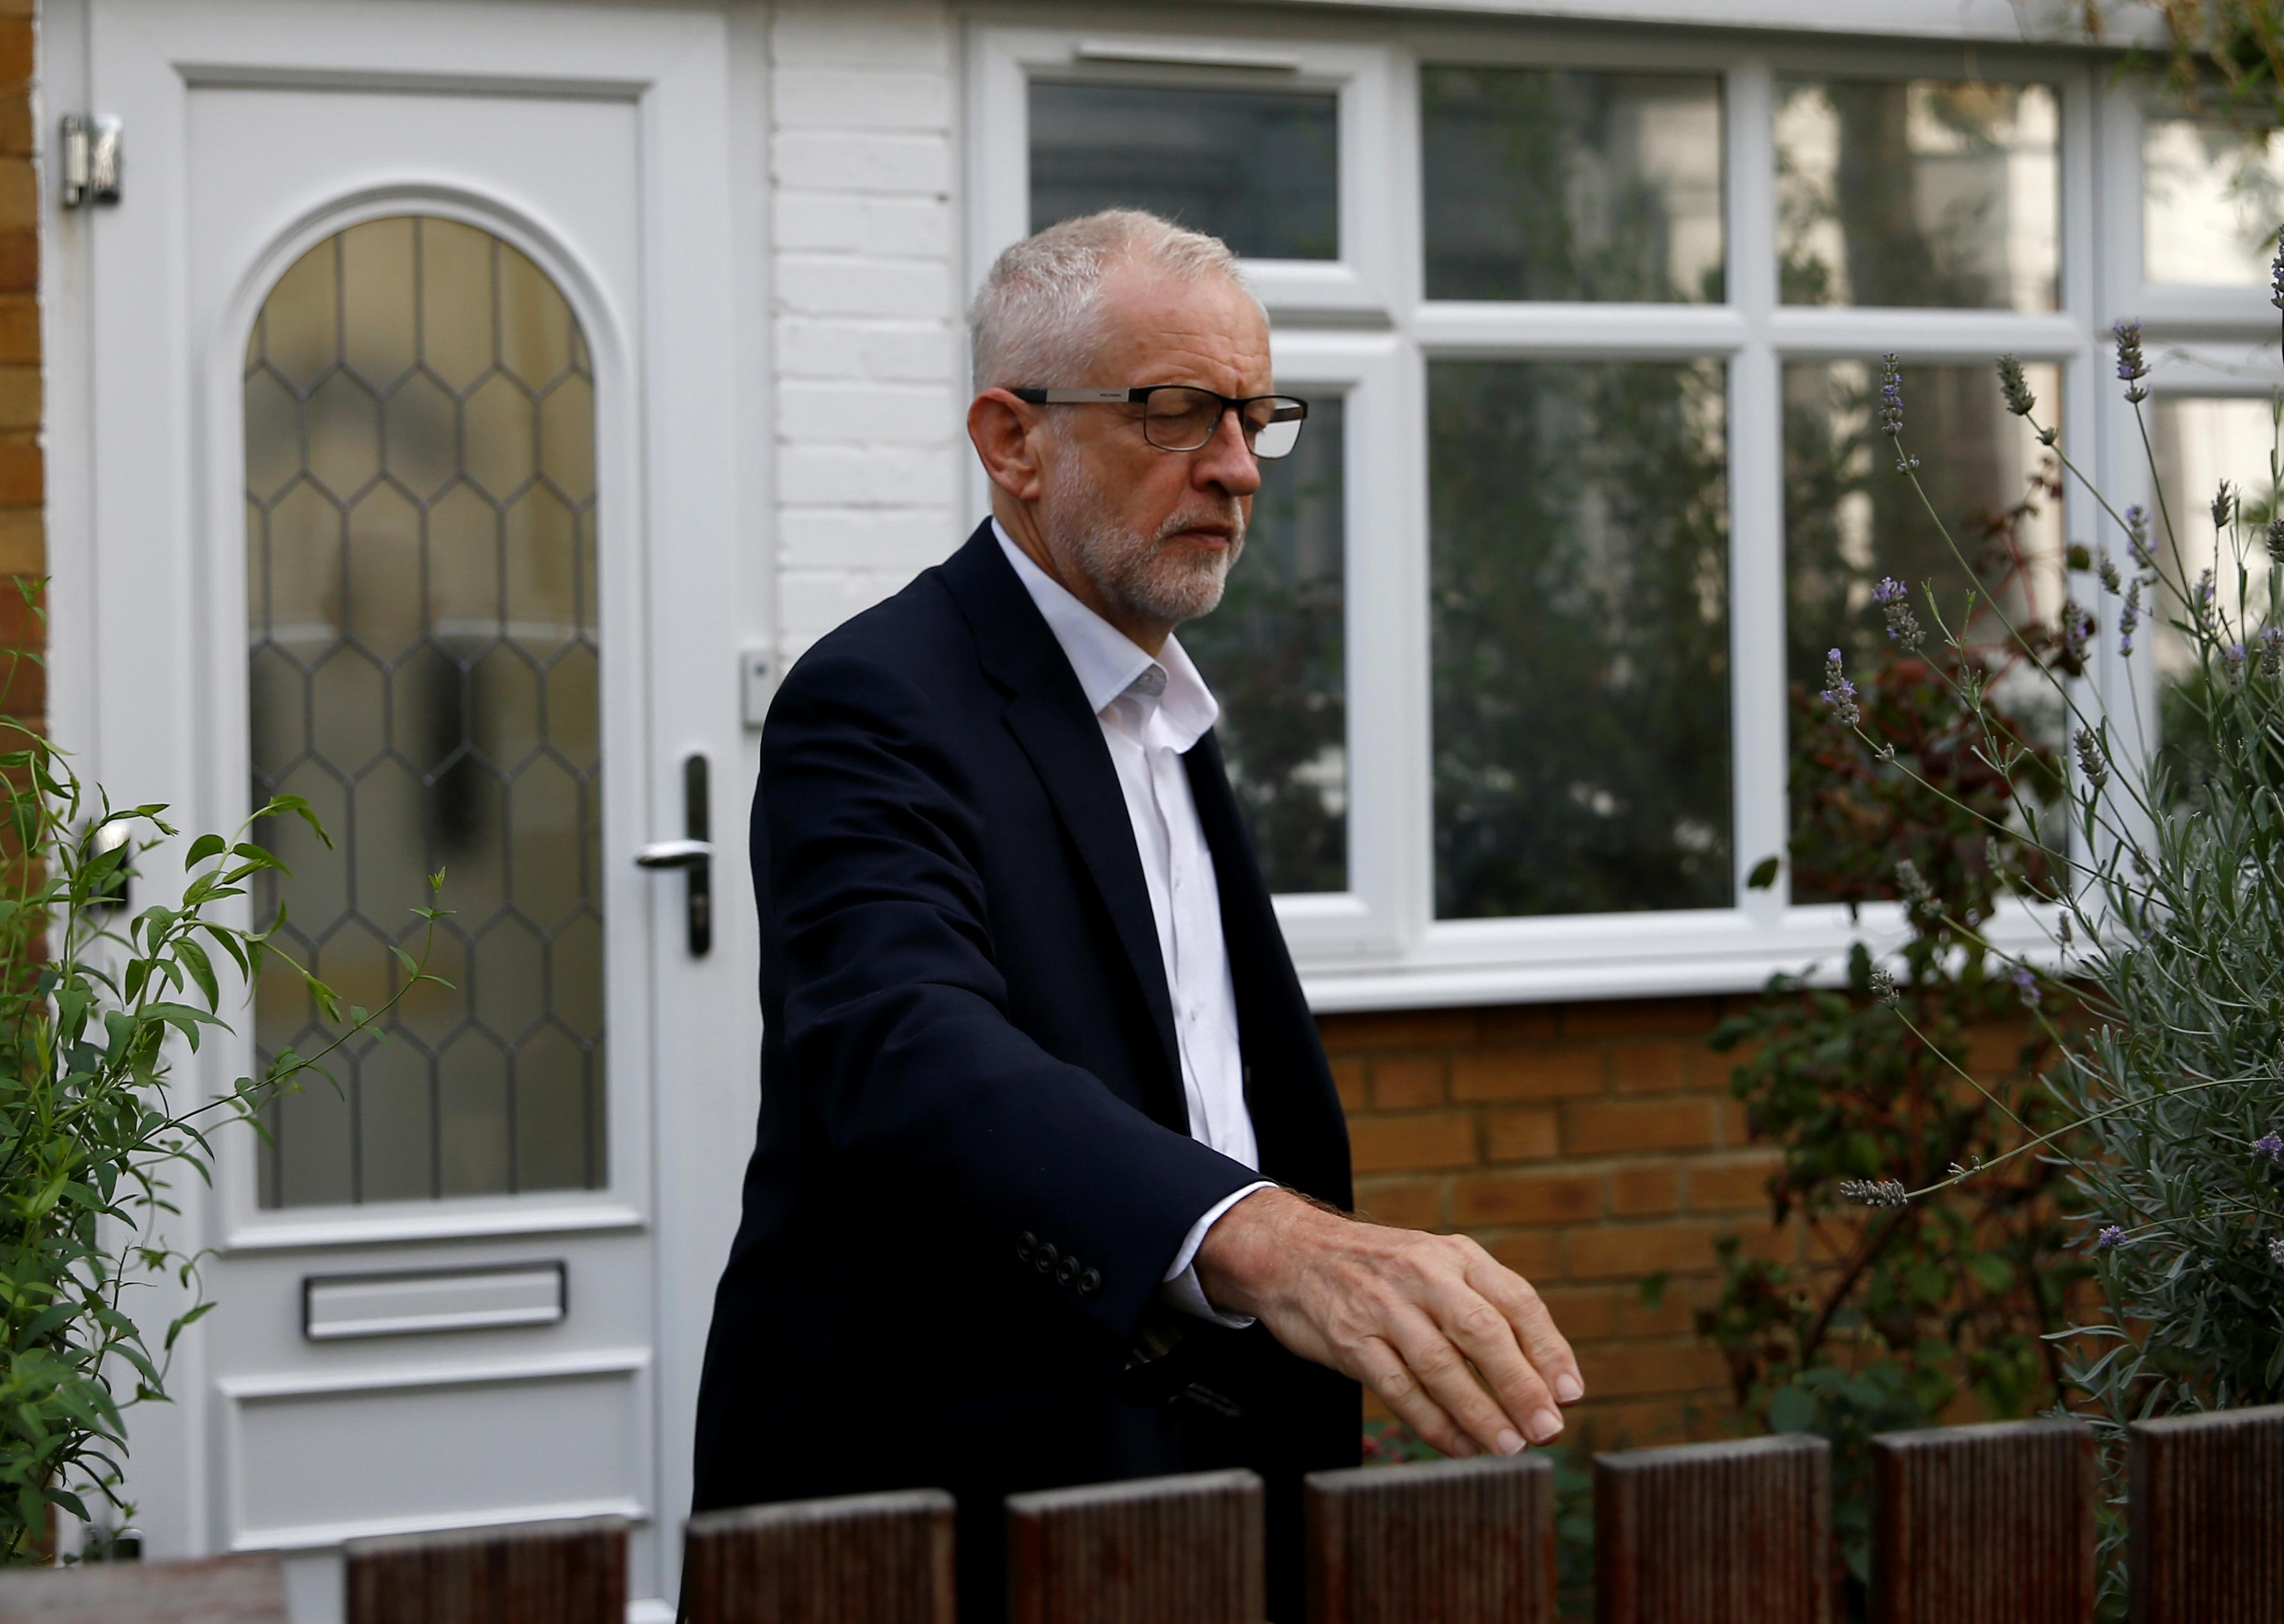 British Conservative lawmaker says Labour's Corbyn can't lead a unity government